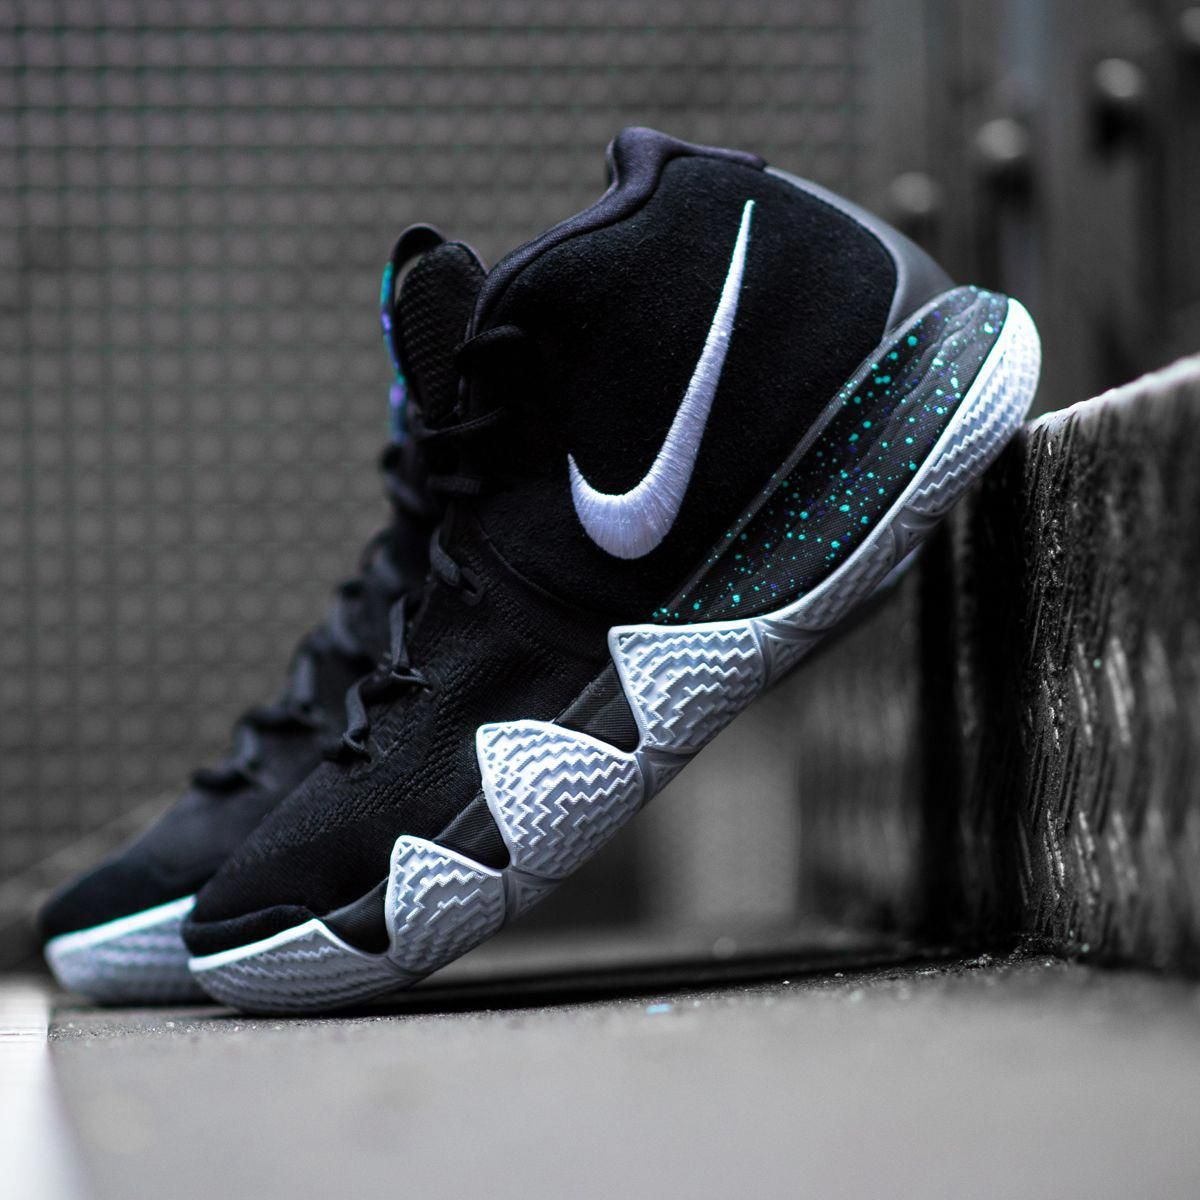 f297235b1ef7 Kyrie s got some new shoes! Get the Nike Kyrie 4  Black Ice  now on  KICKZ.com and in selected stores!  BasketballShoes